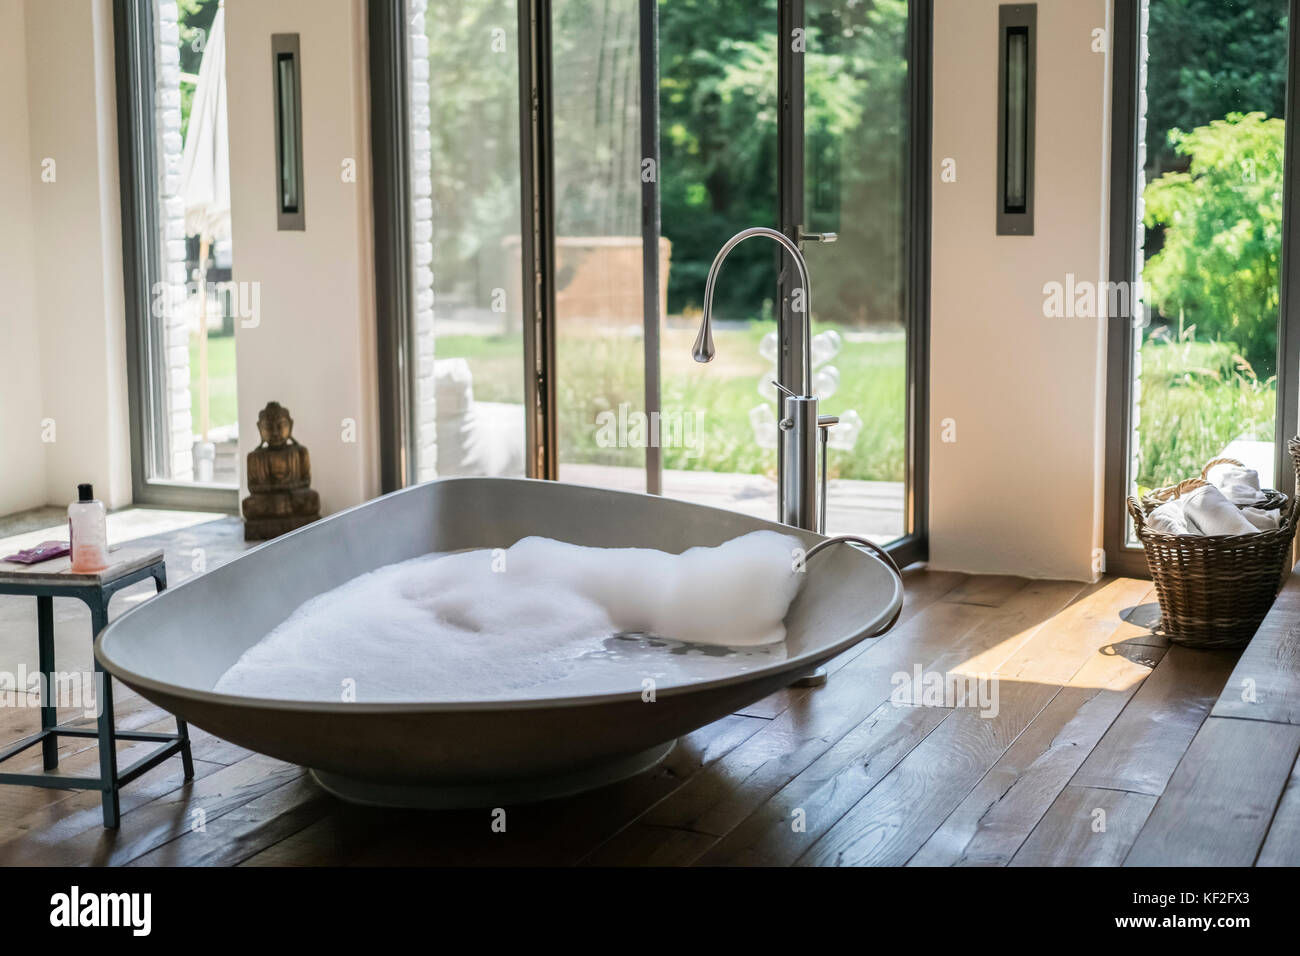 Interior Of A Luxurious Bath Room In A Country House Stock Photo